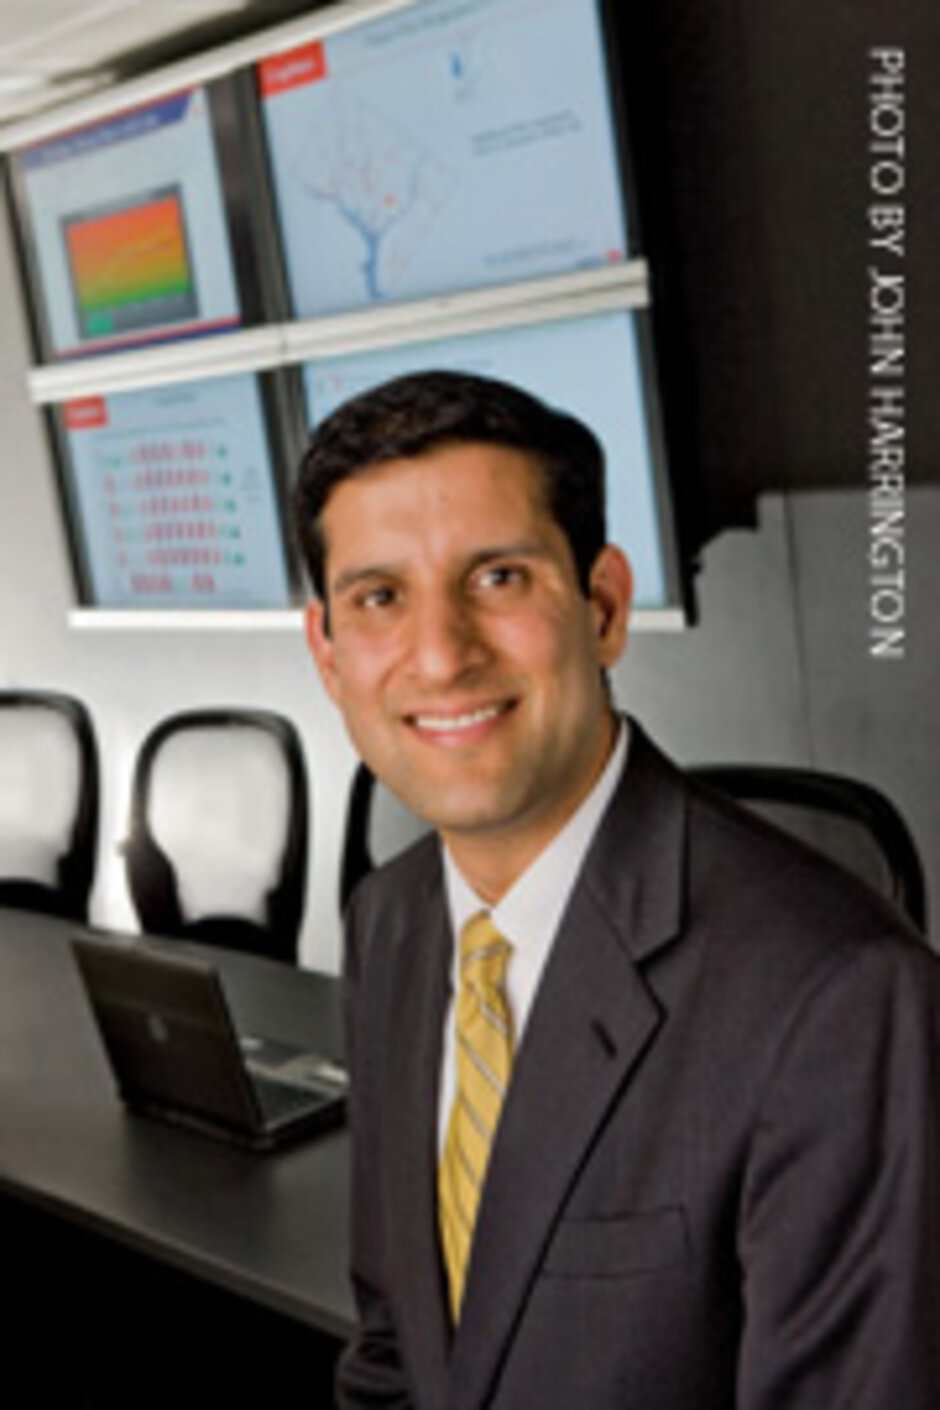 Vivek Kundra, chief information officer of the United States ...